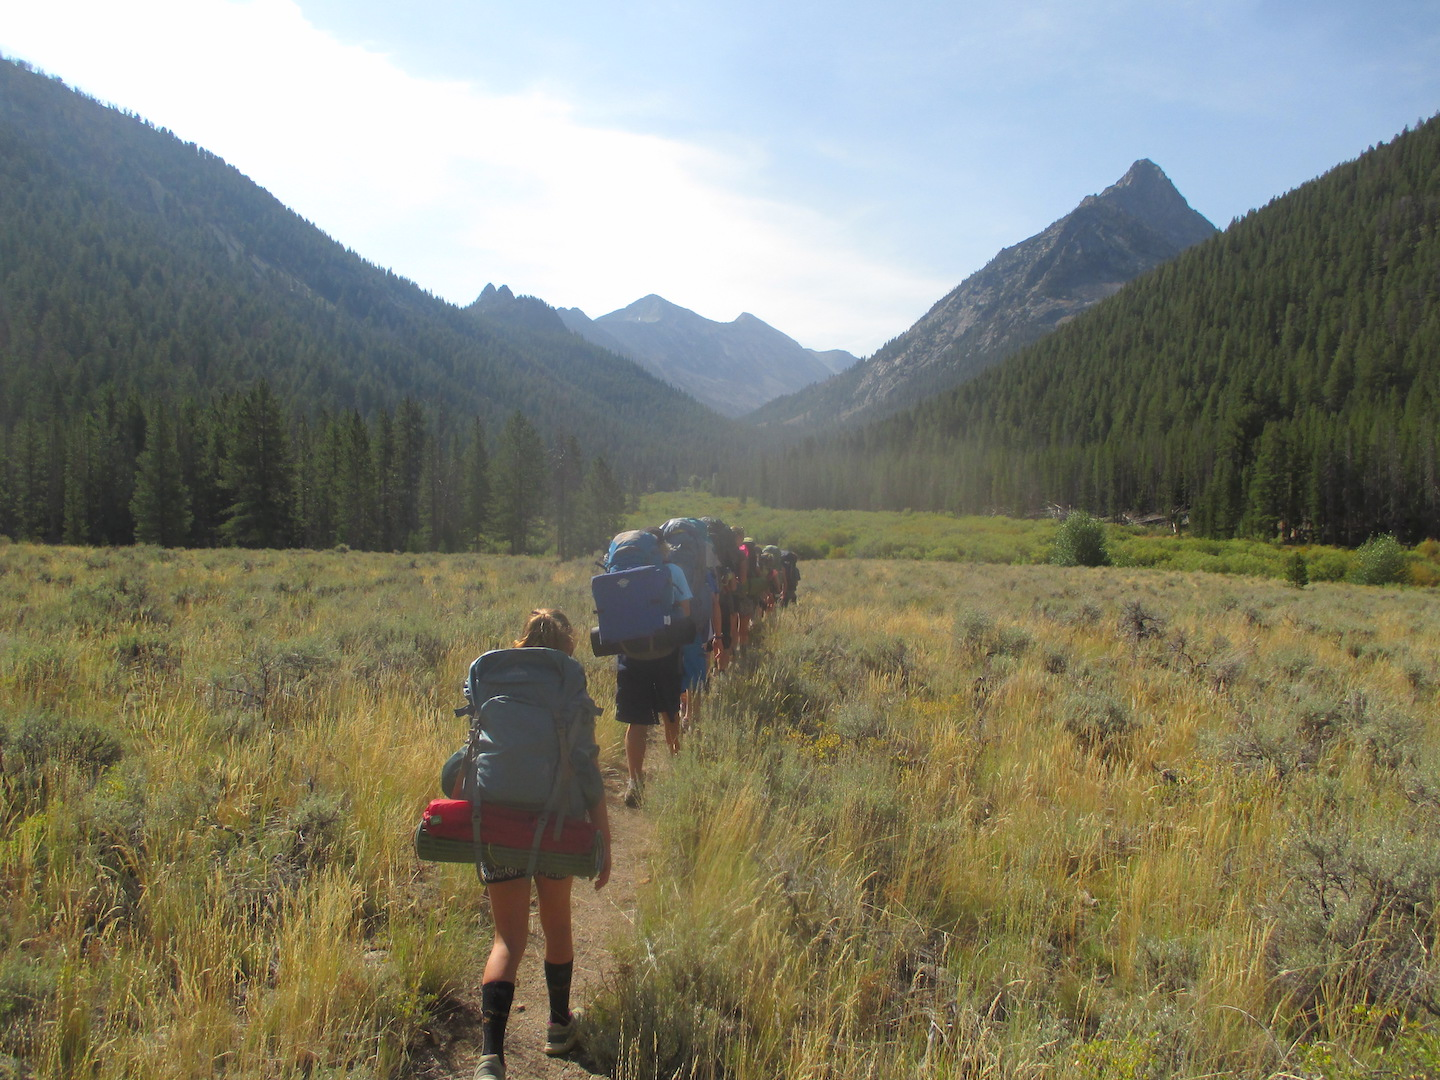 A group of students hiking across a field in Sun Valley